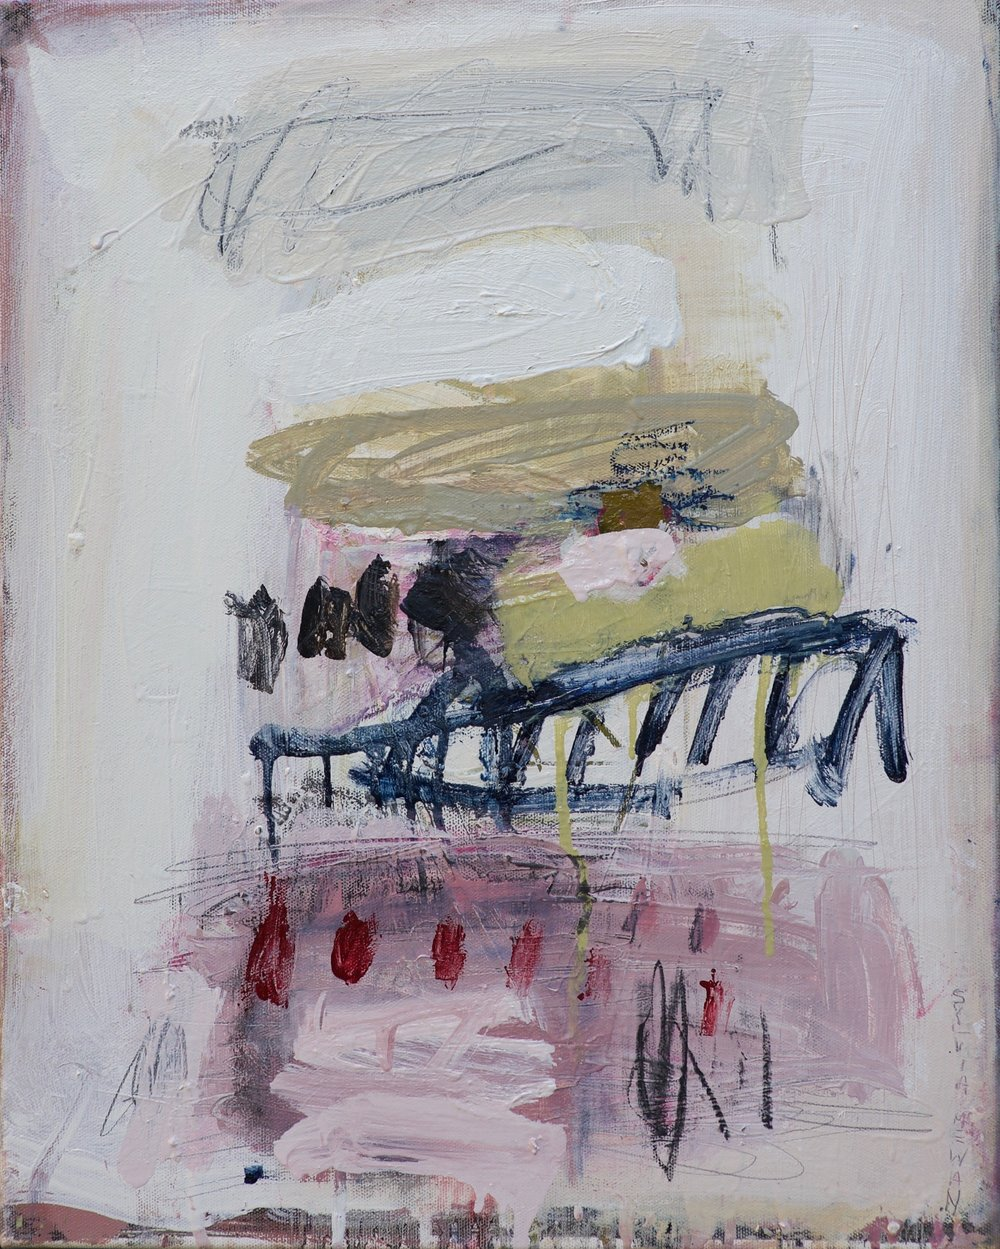 UNTITLED no36_20 x 15 oil on canvas.jpg